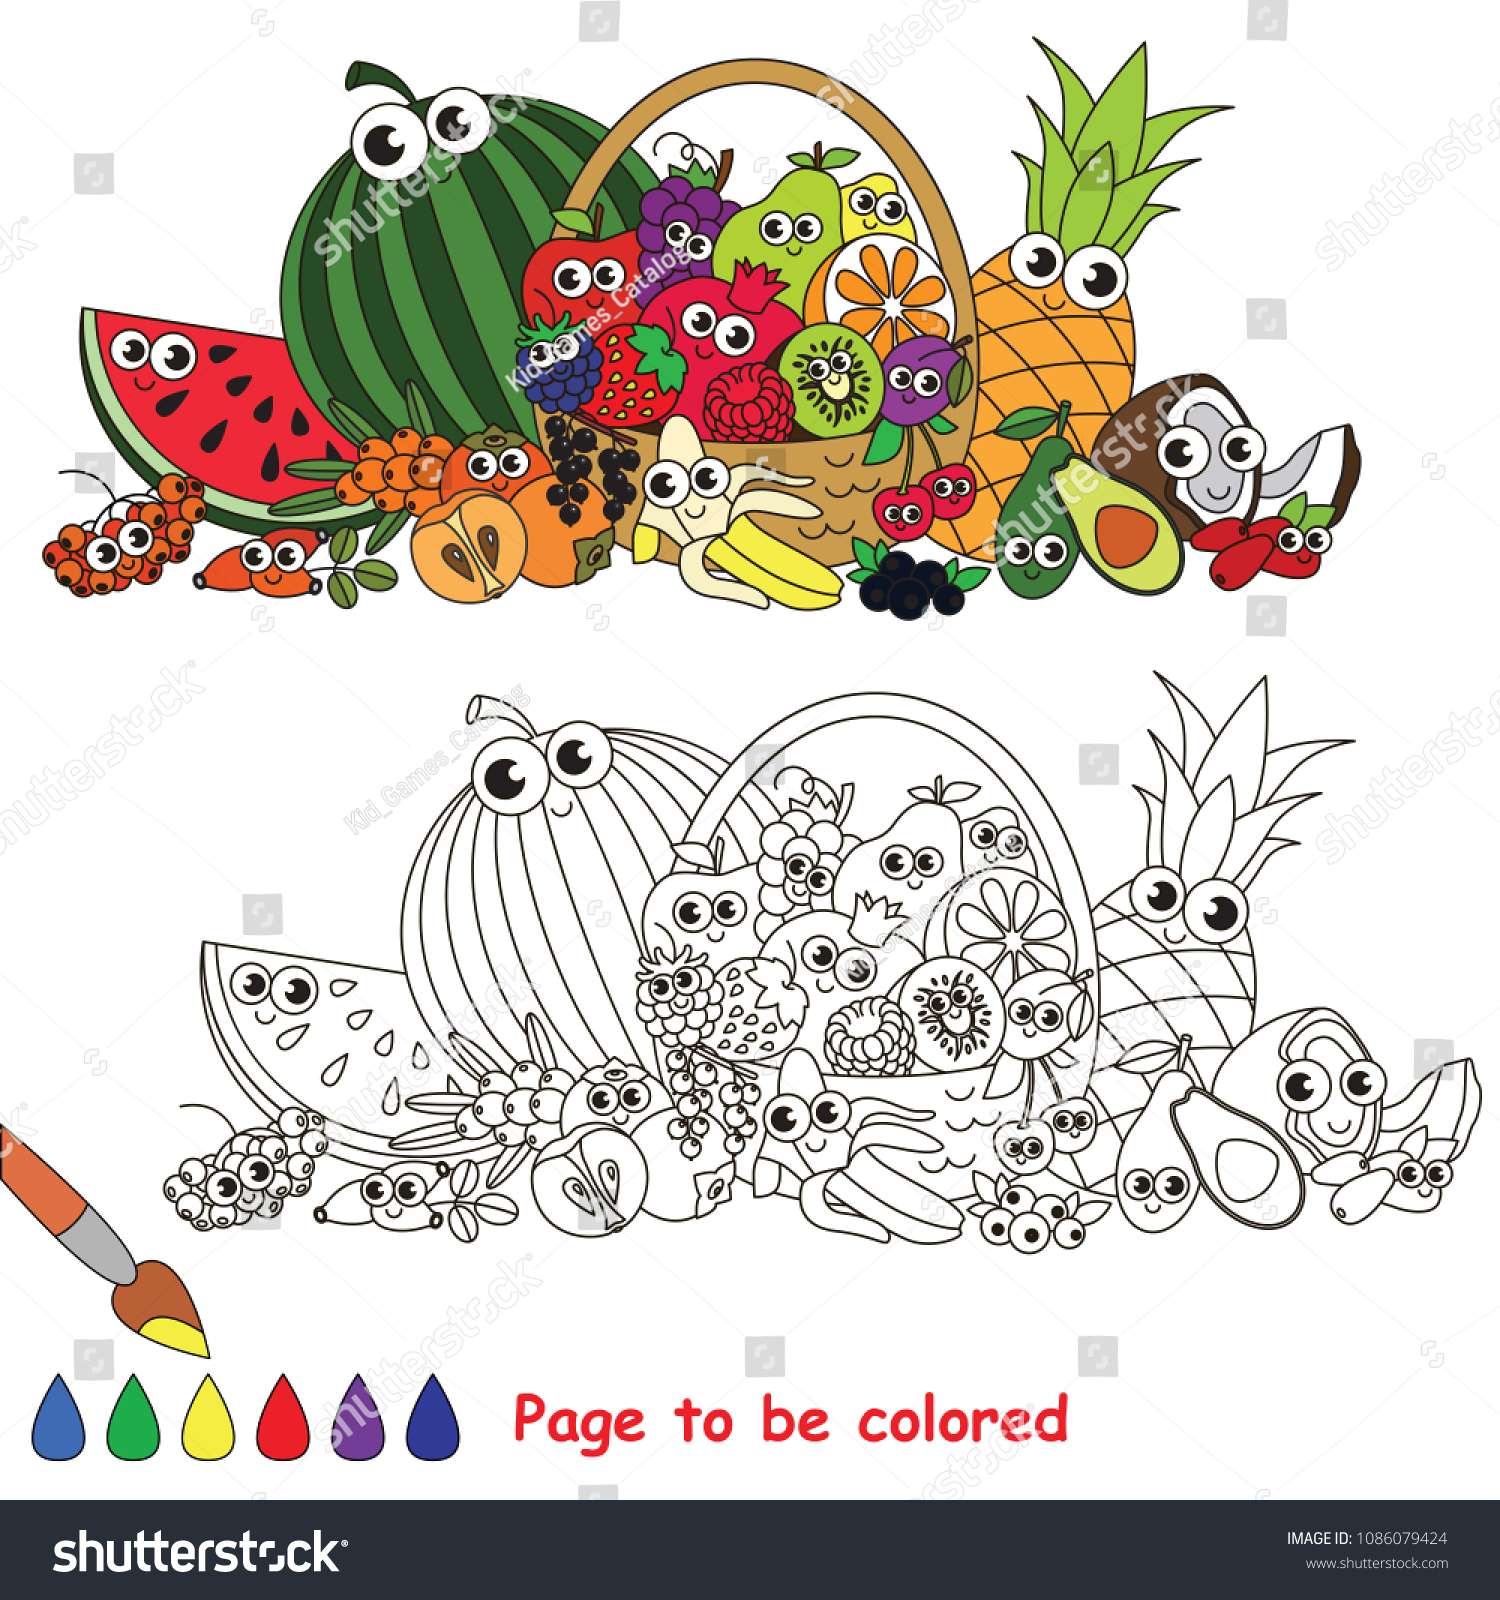 Funny Fruit Basket Be Colored Coloring Stock Vector Royalty Free 1086079424